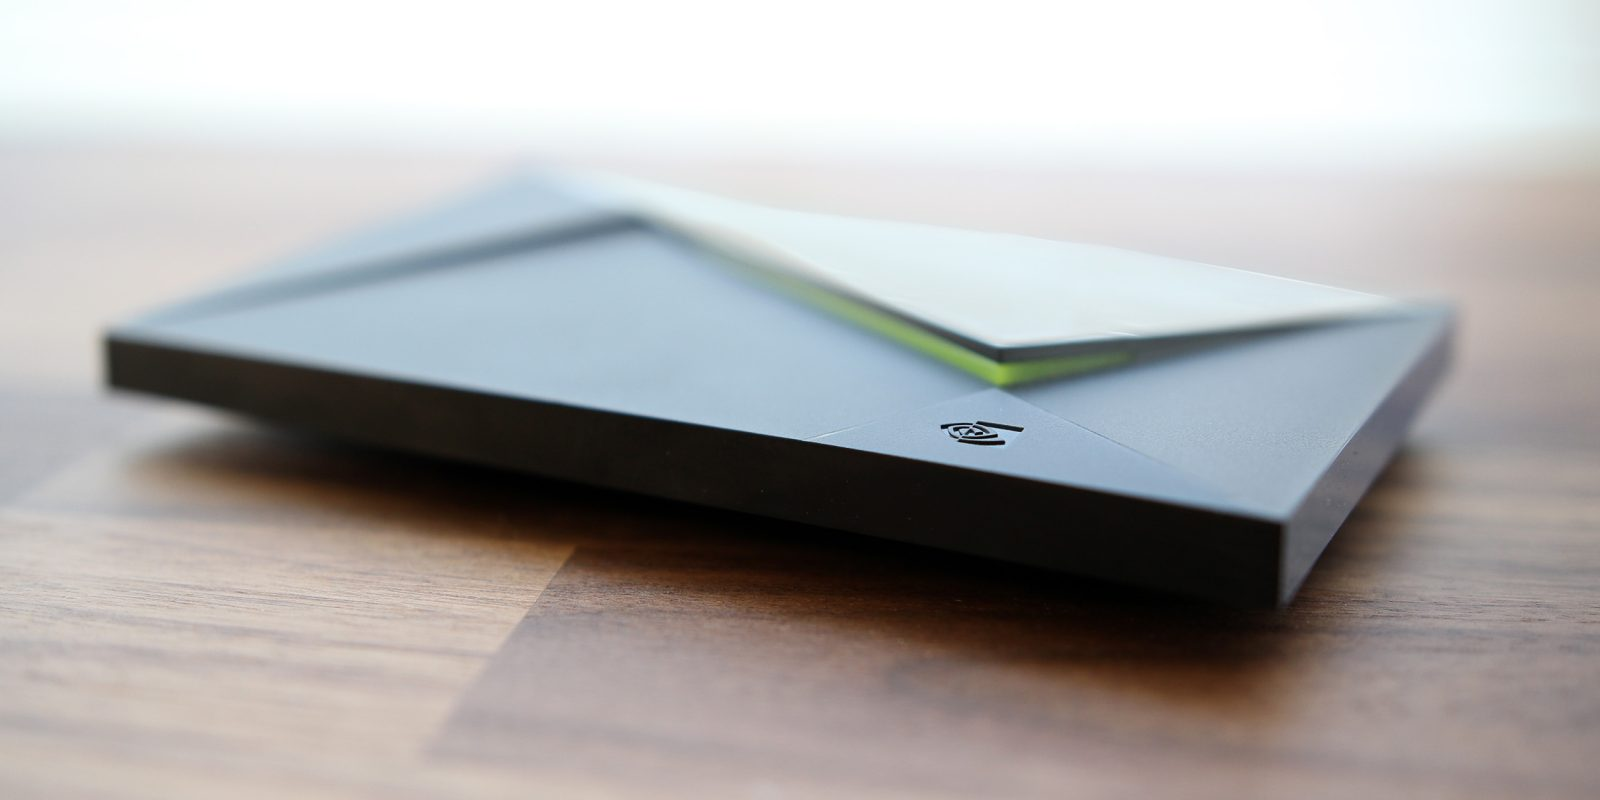 Nvidia Shield TV w/ updated hardware possibly in the works - 9to5Google